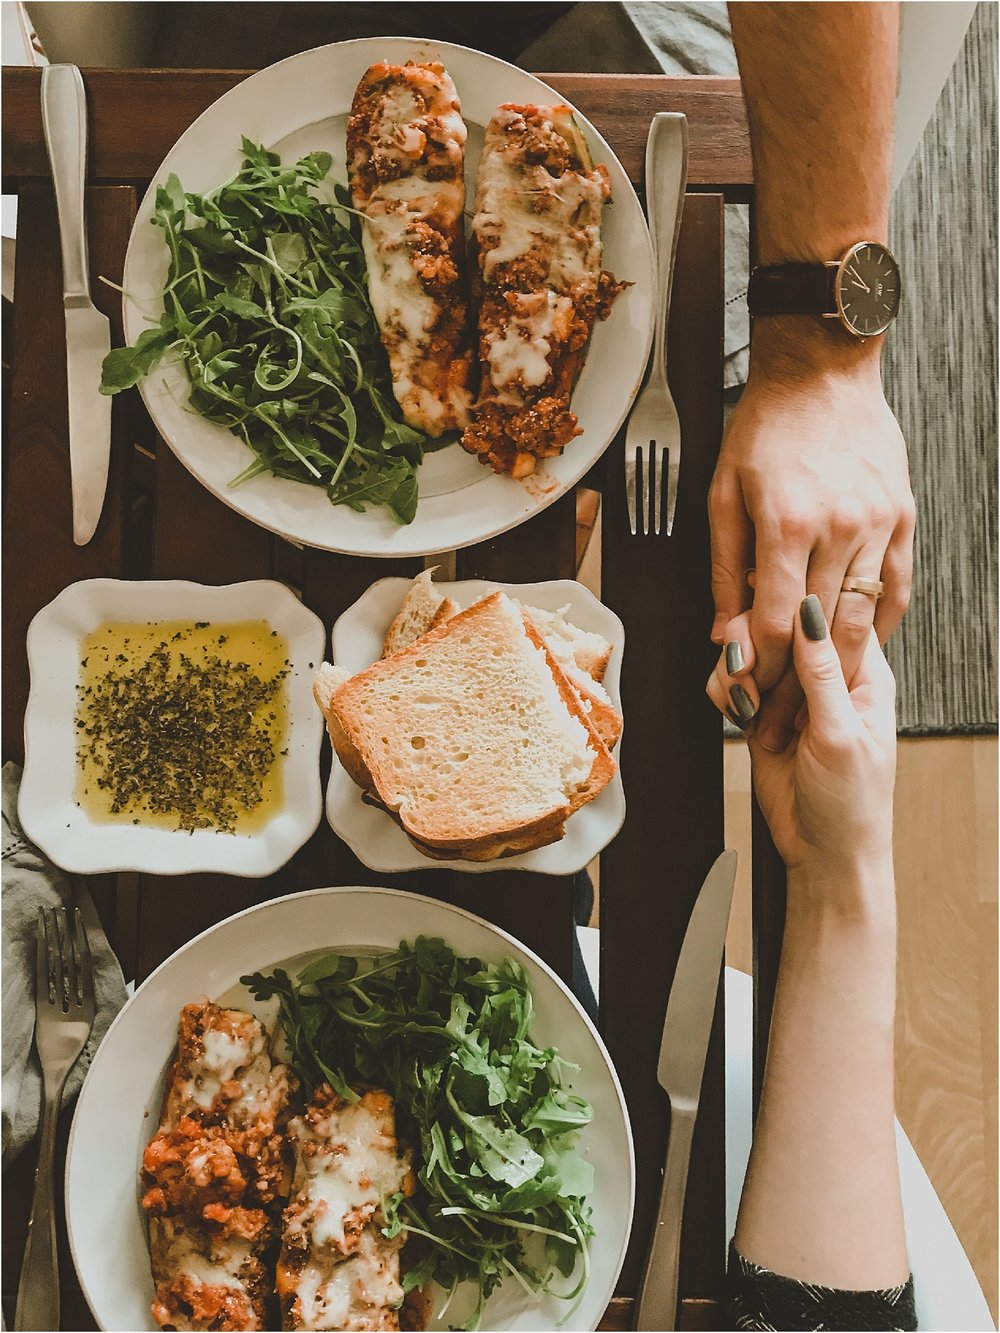 PattengalePhotography_StLouis_Missouri_Photographer_Romantic_Dinner_At_Home_ItalianStuffed_Zucchini_WeekendWear_DateNight_Newlyweds__0001.jpg